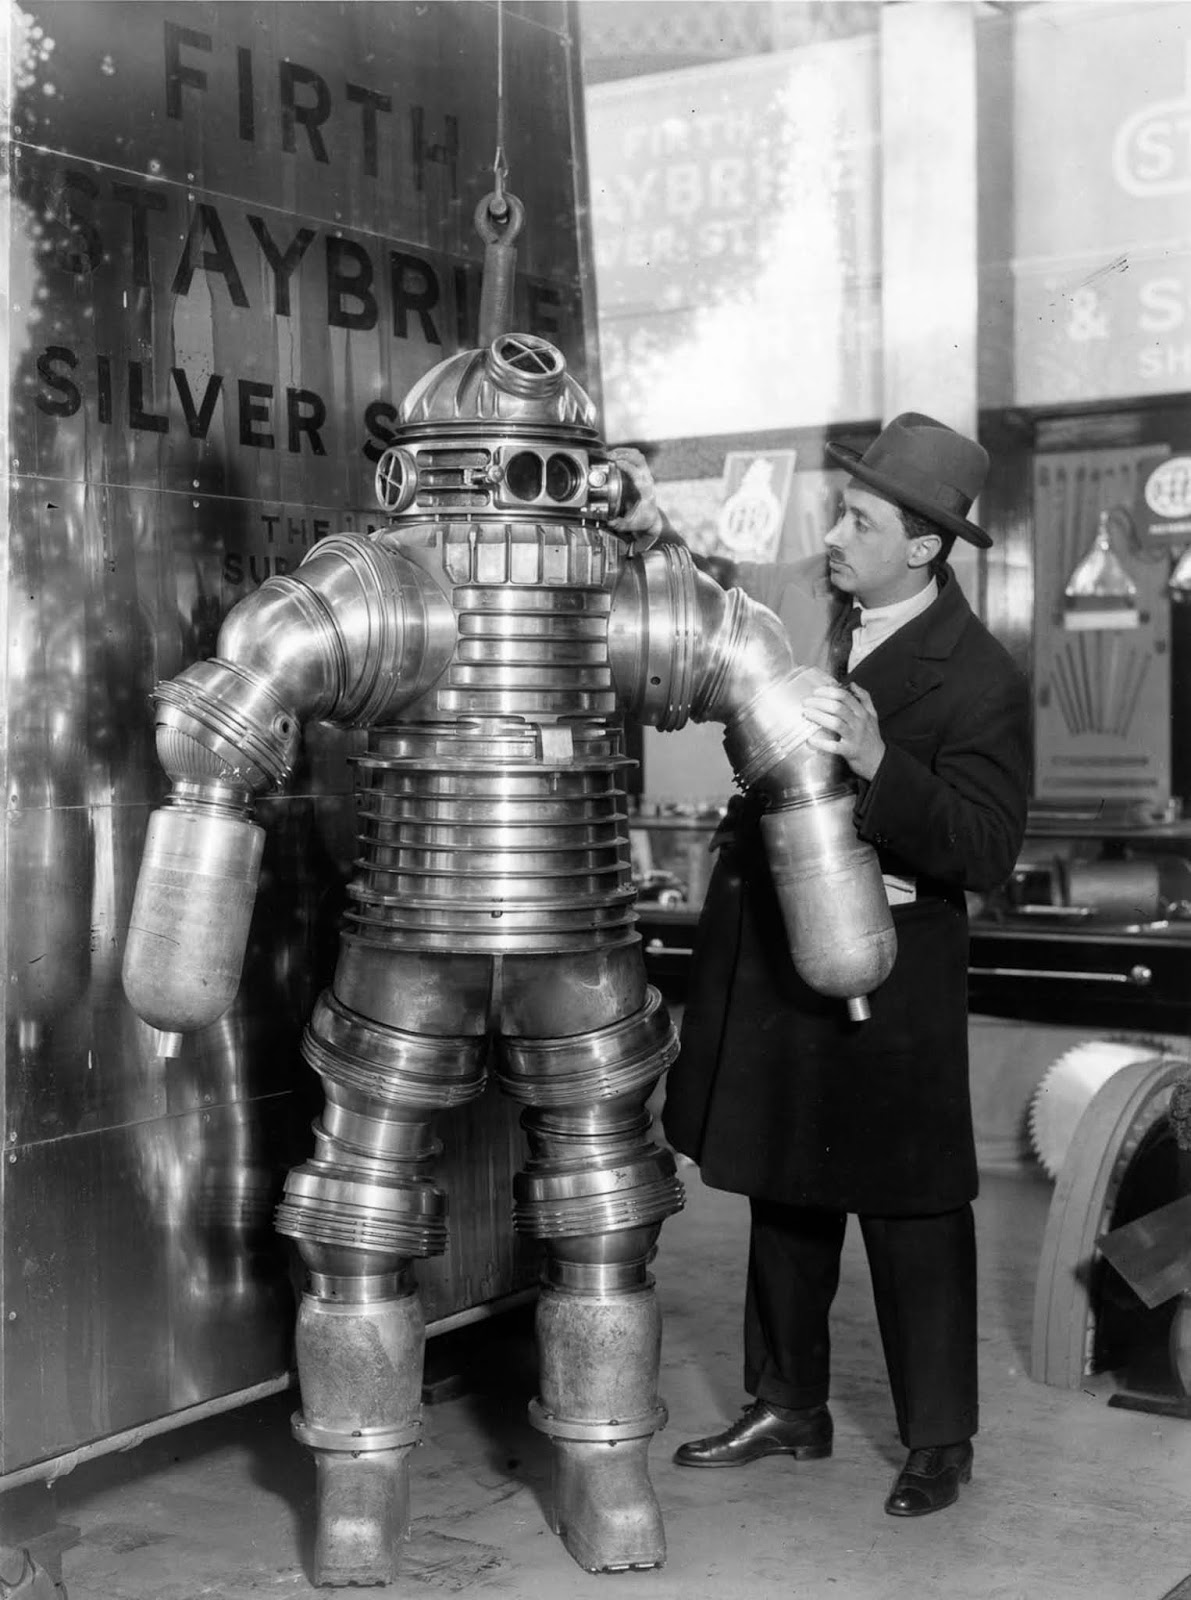 Inventor J. S. Peress explains the workings of his new rustless diving suit, made of Staybrite Silver Steel, at the Olympia Shipping Exhibition in London. The suit weighs 550 pounds and can work at a depth of 650 feet.